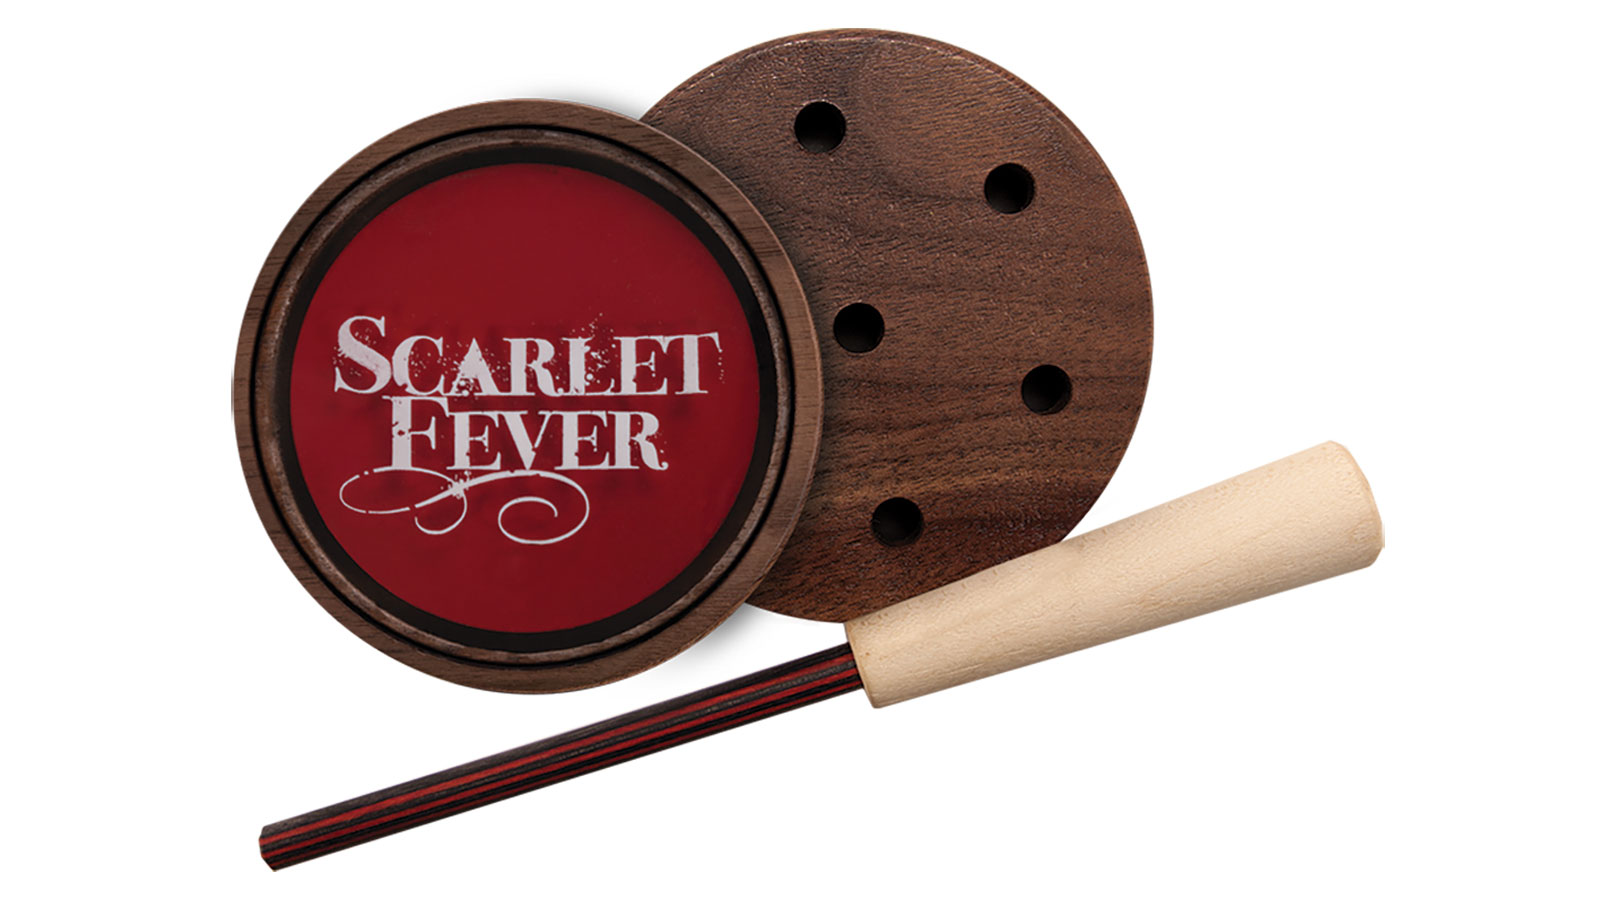 Knight and Hale SCARLET FEVER